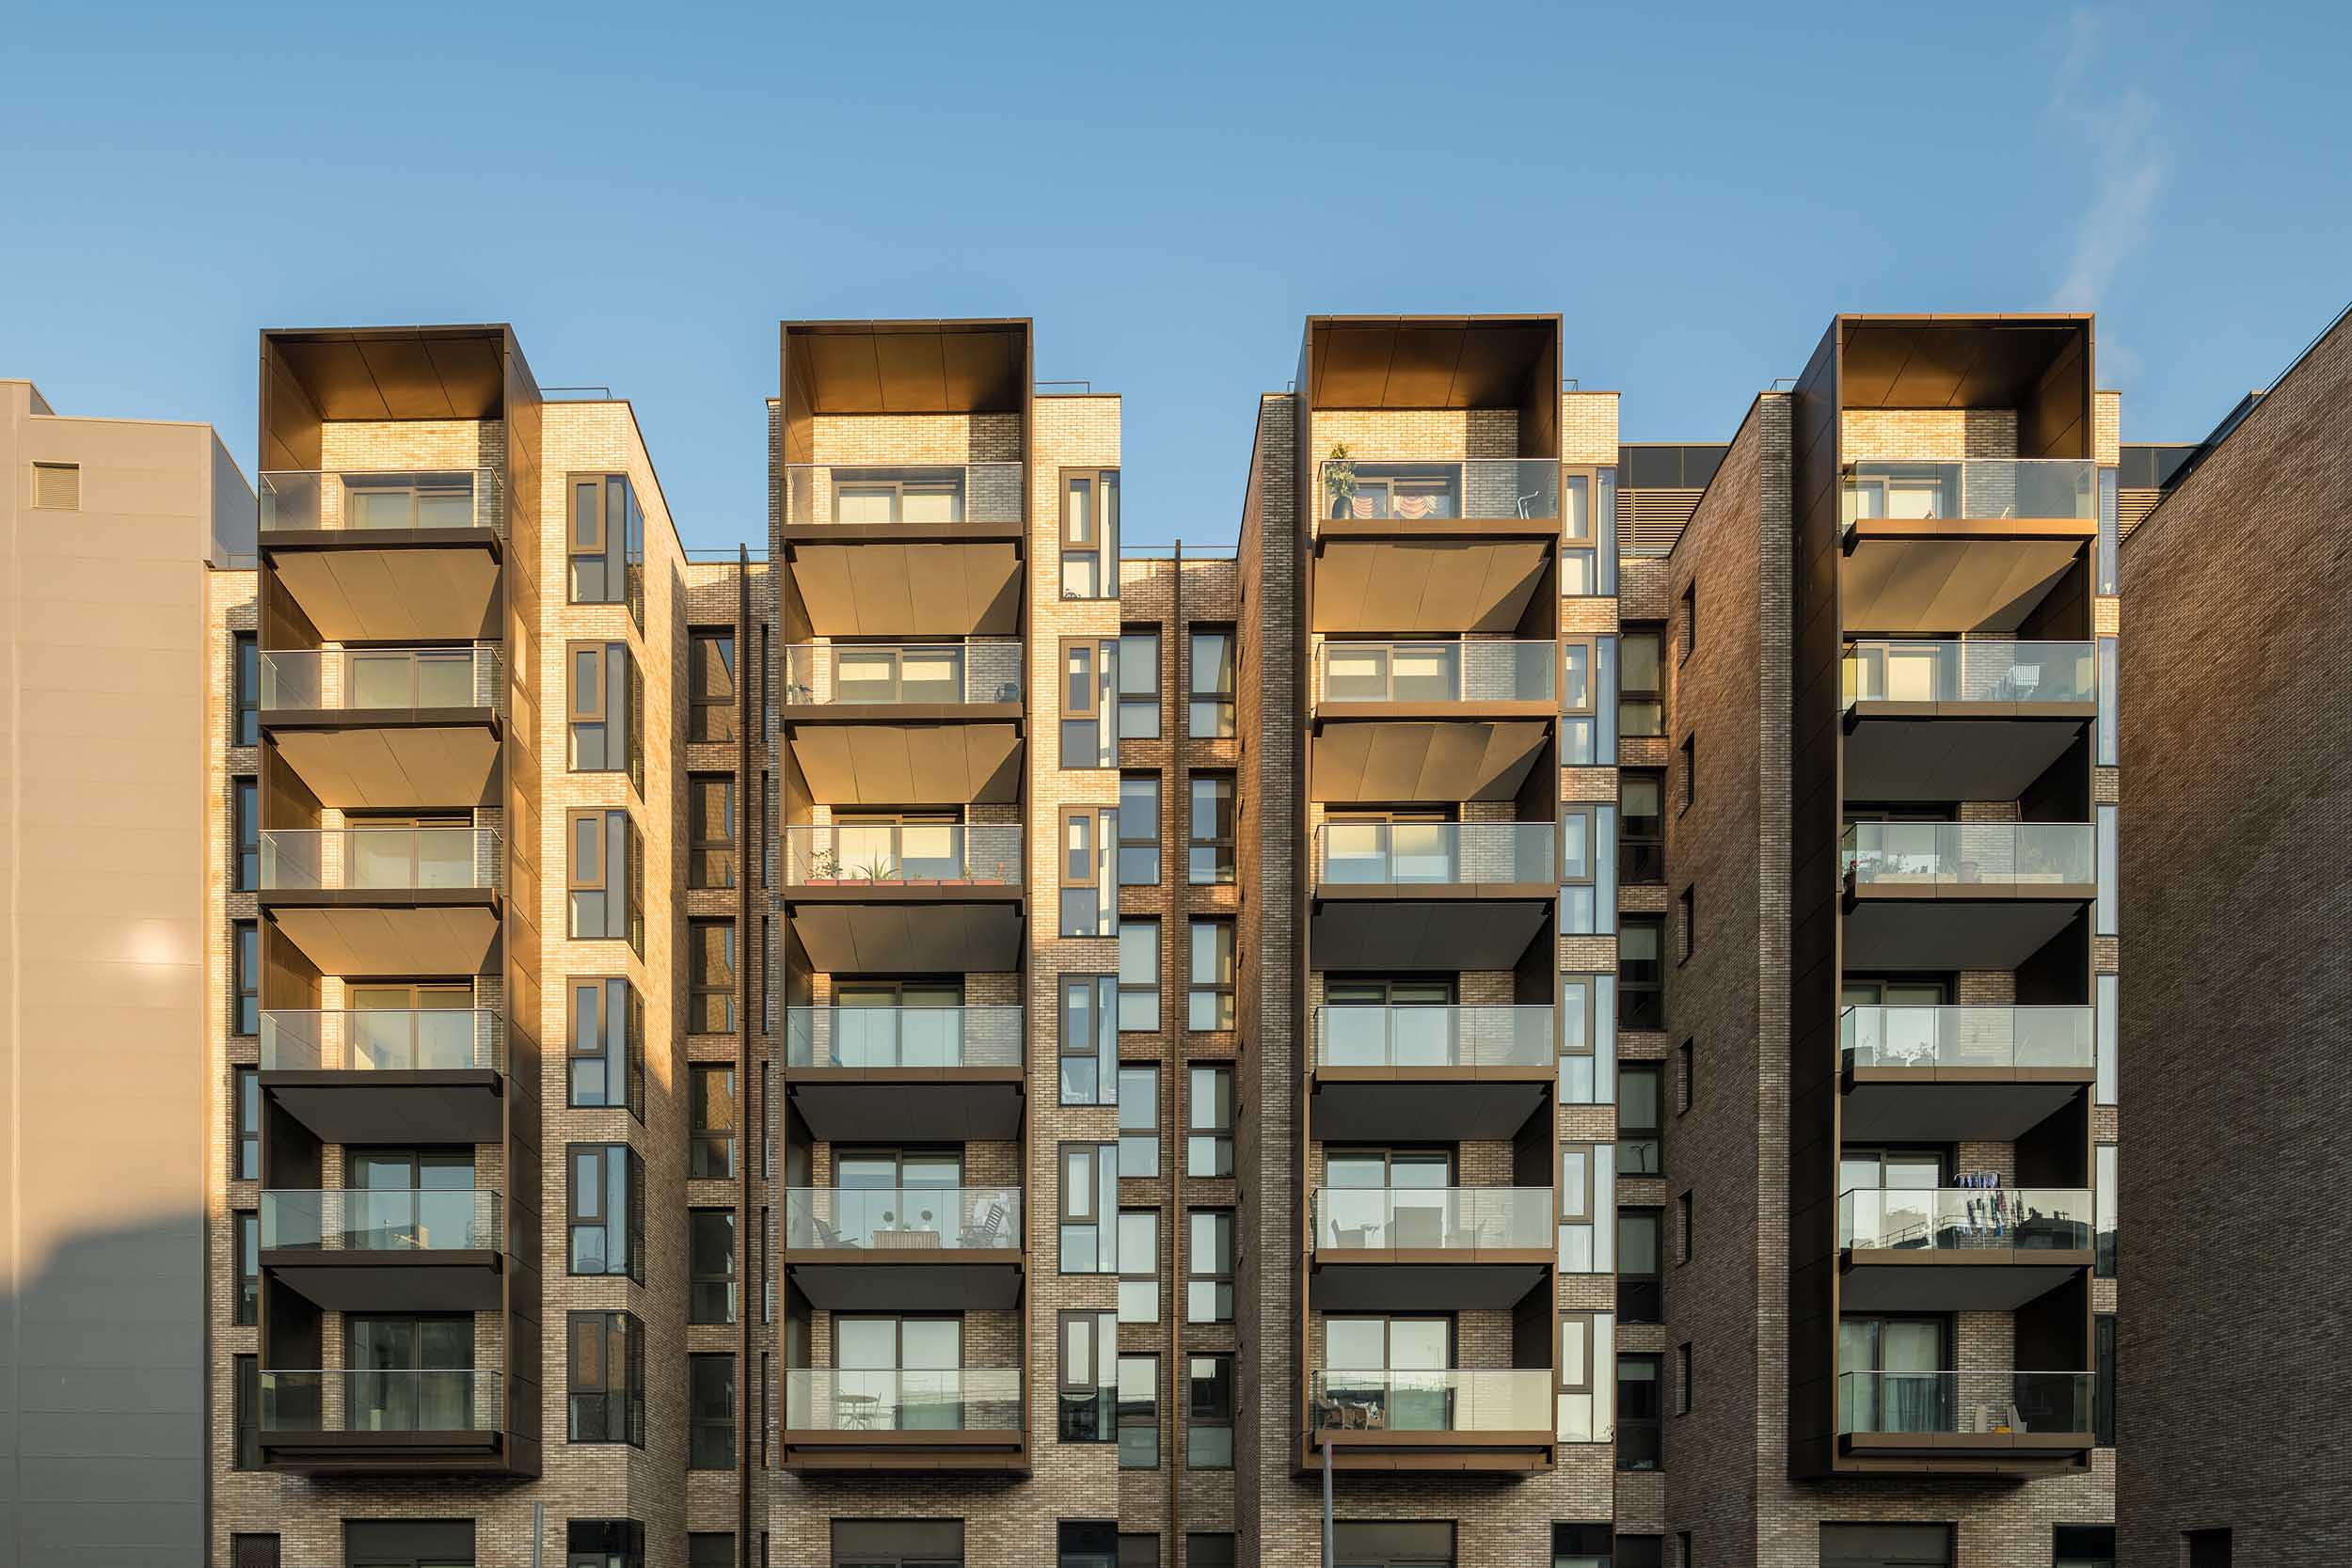 apartment-buildings-facade-architecture-photography-london